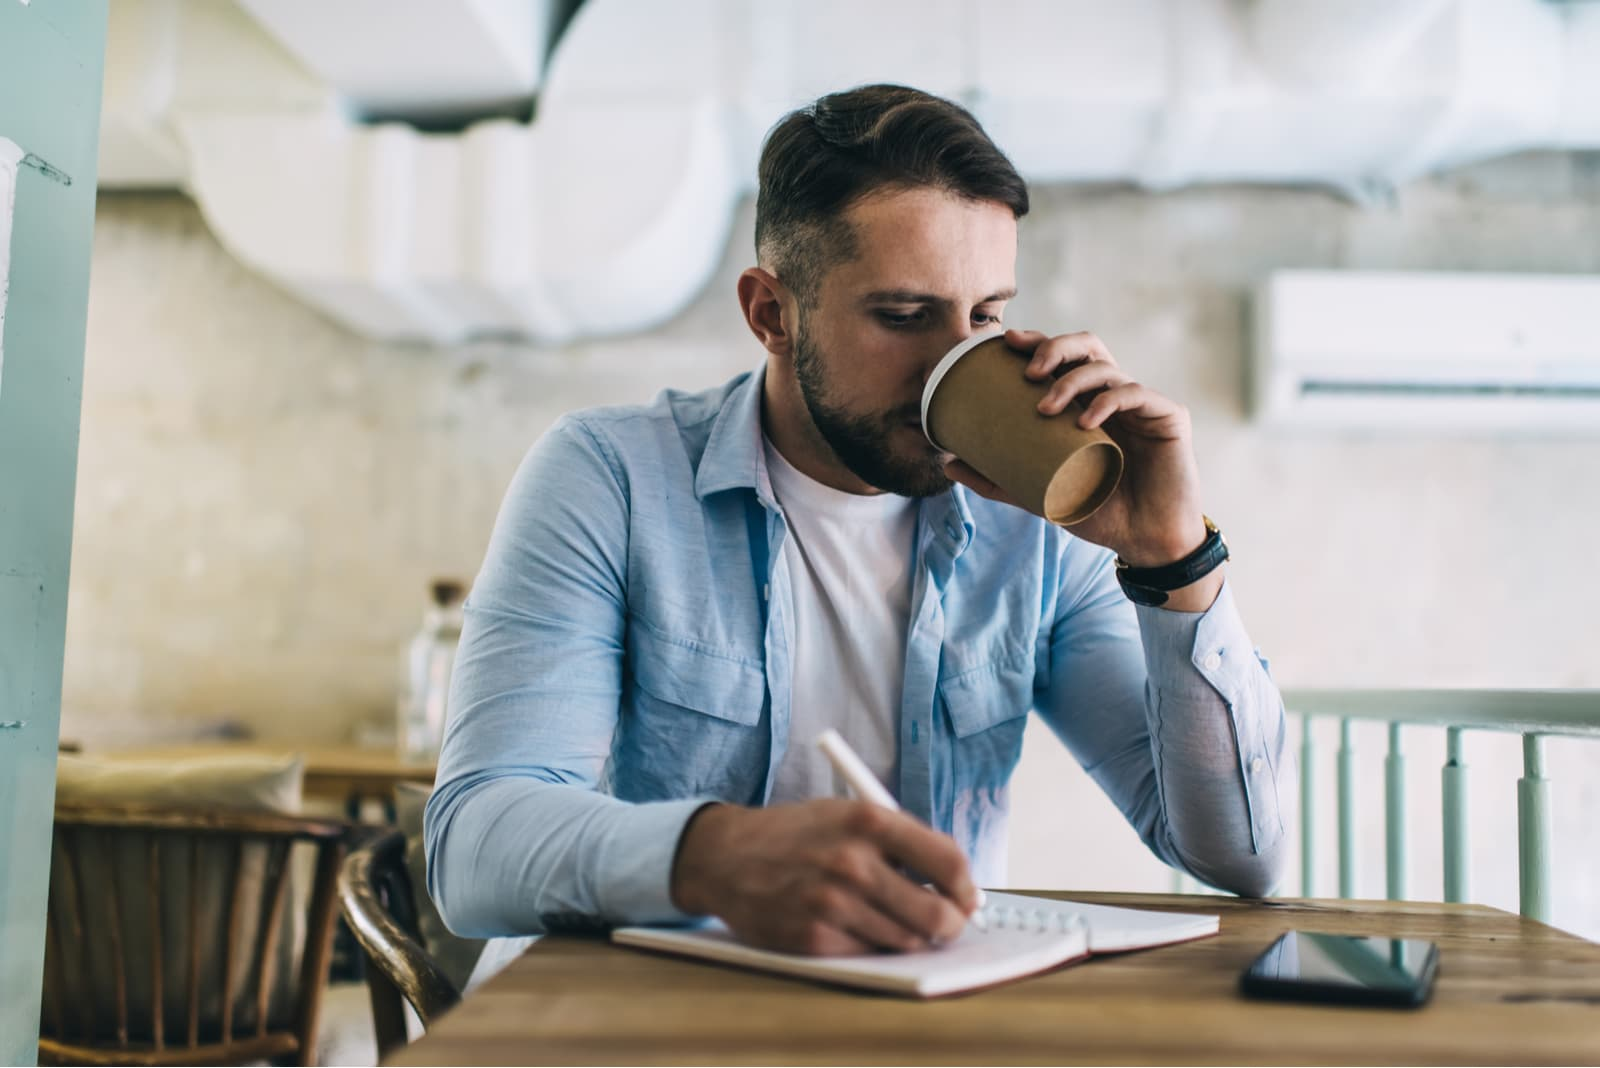 a man sits drinking coffee and writing